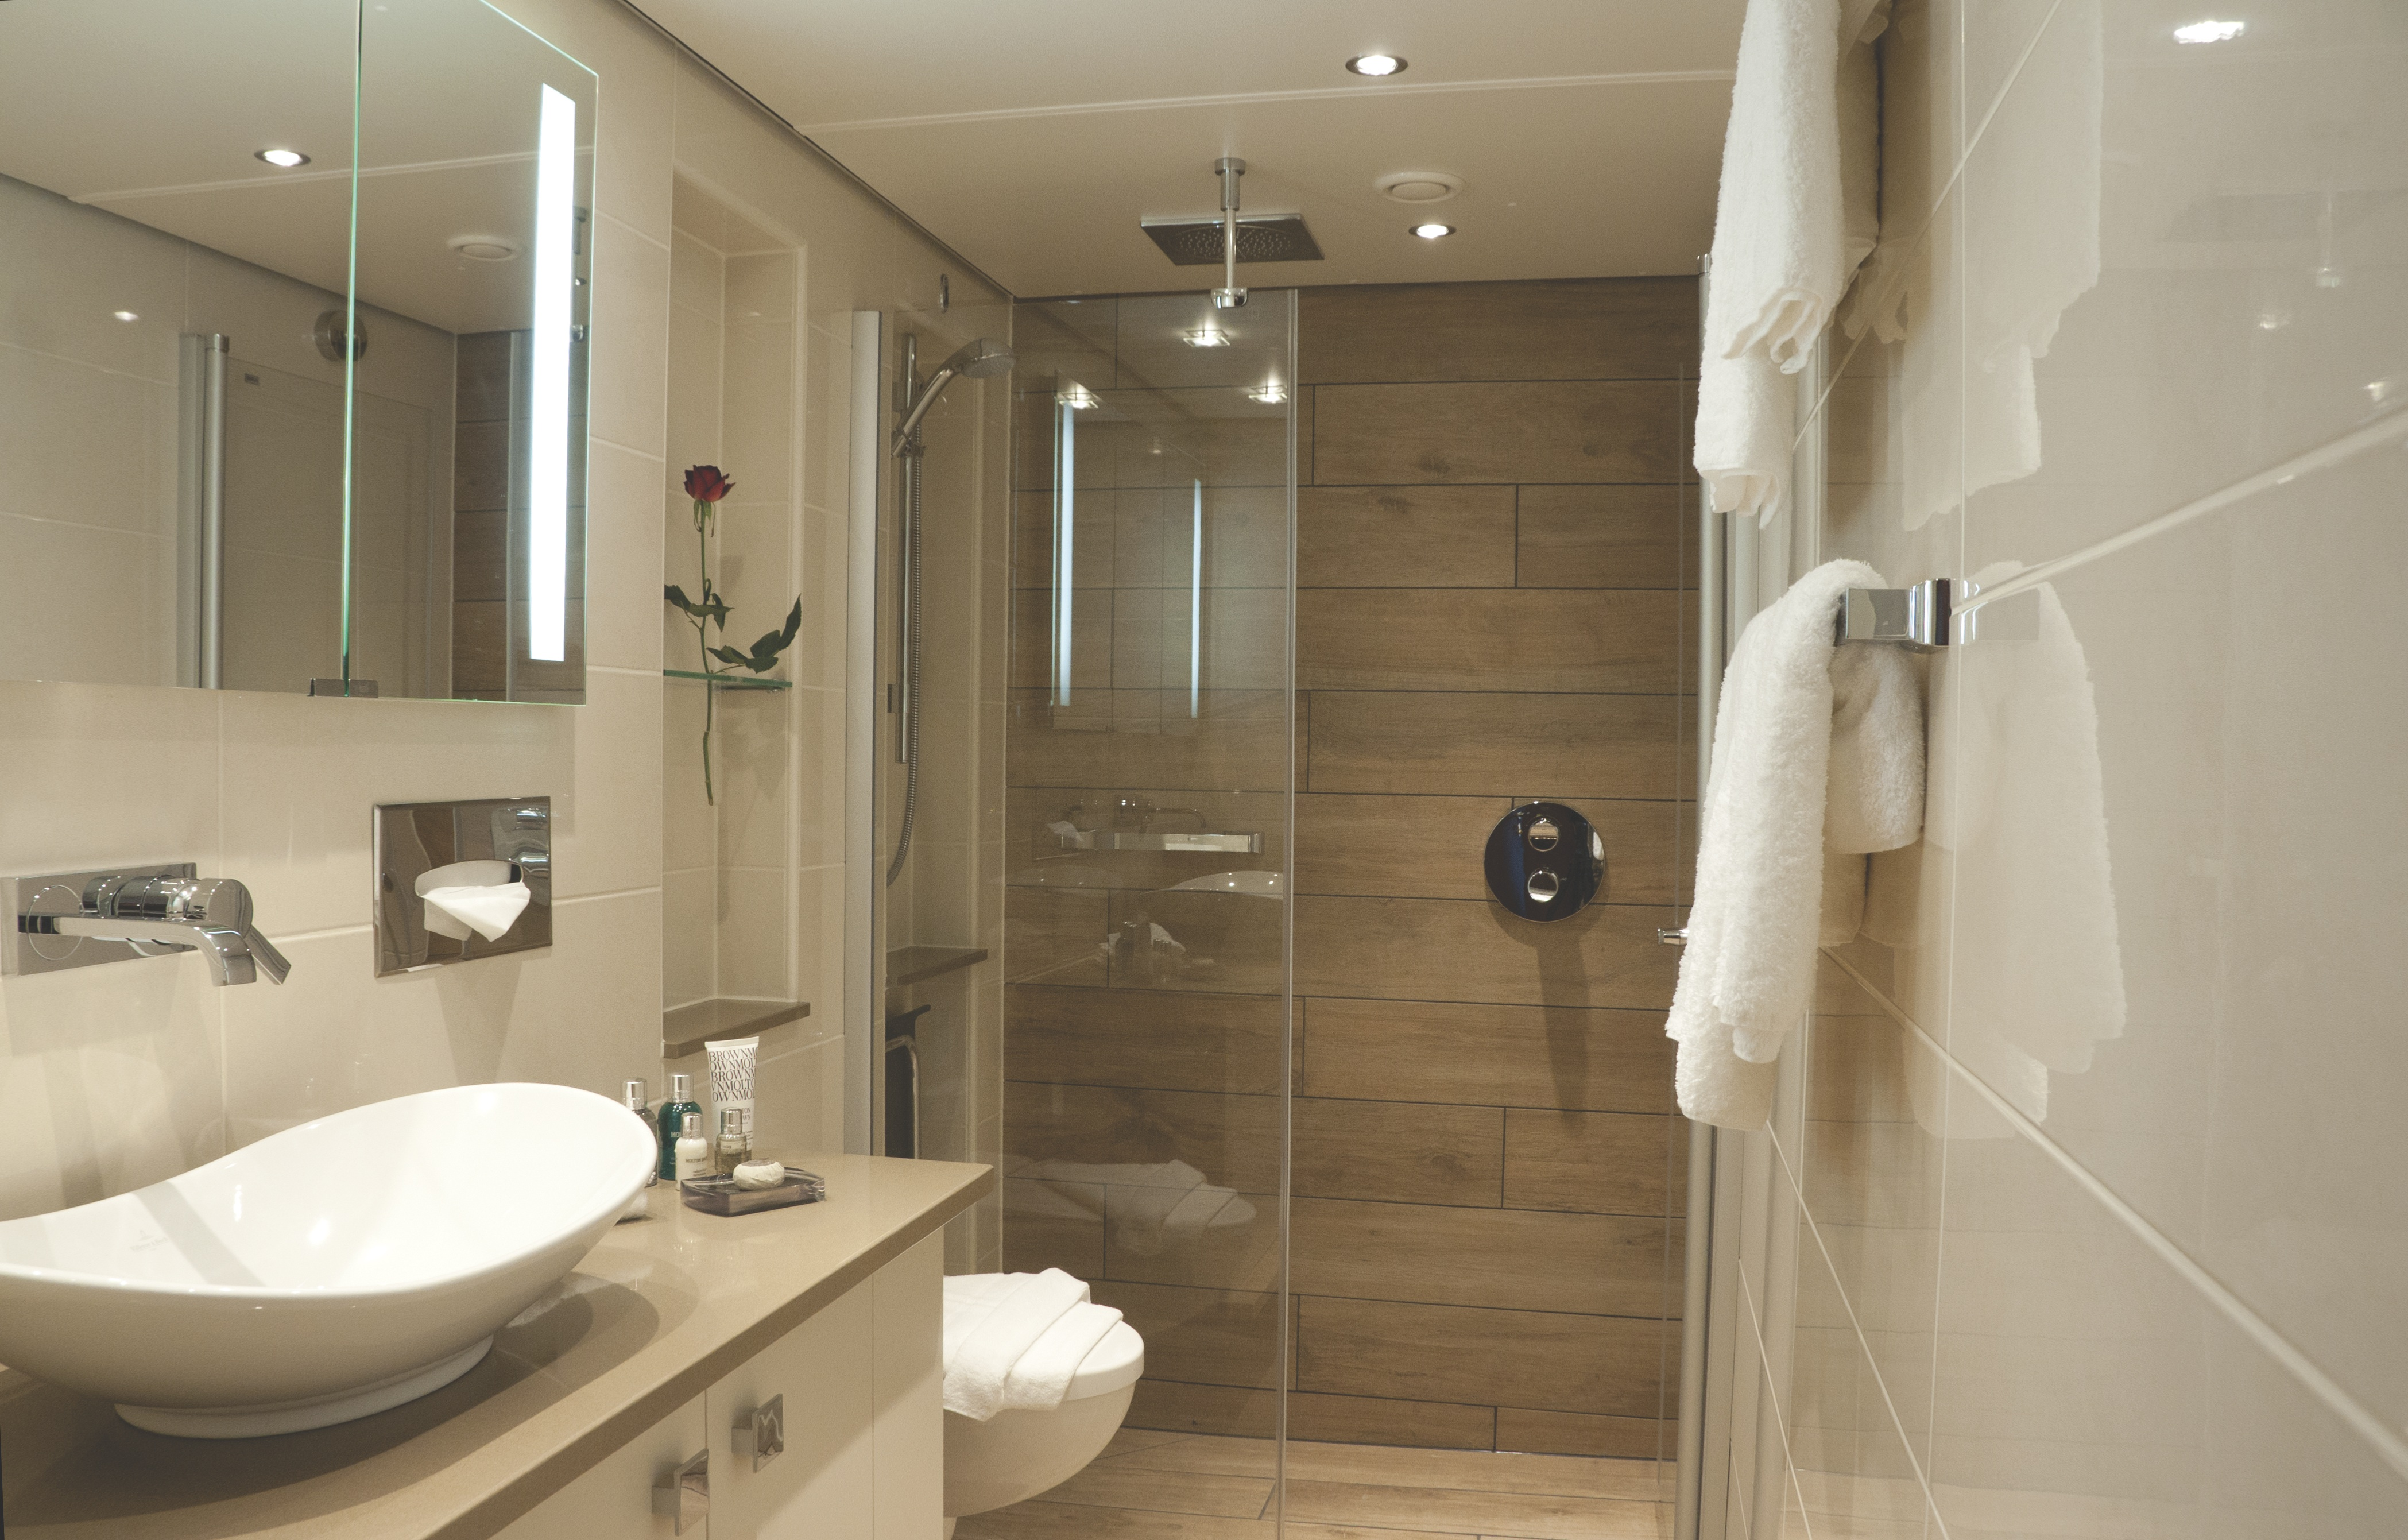 Tauck Inspiration Class Accommodation Category 7 Suite Bathroom.jpg